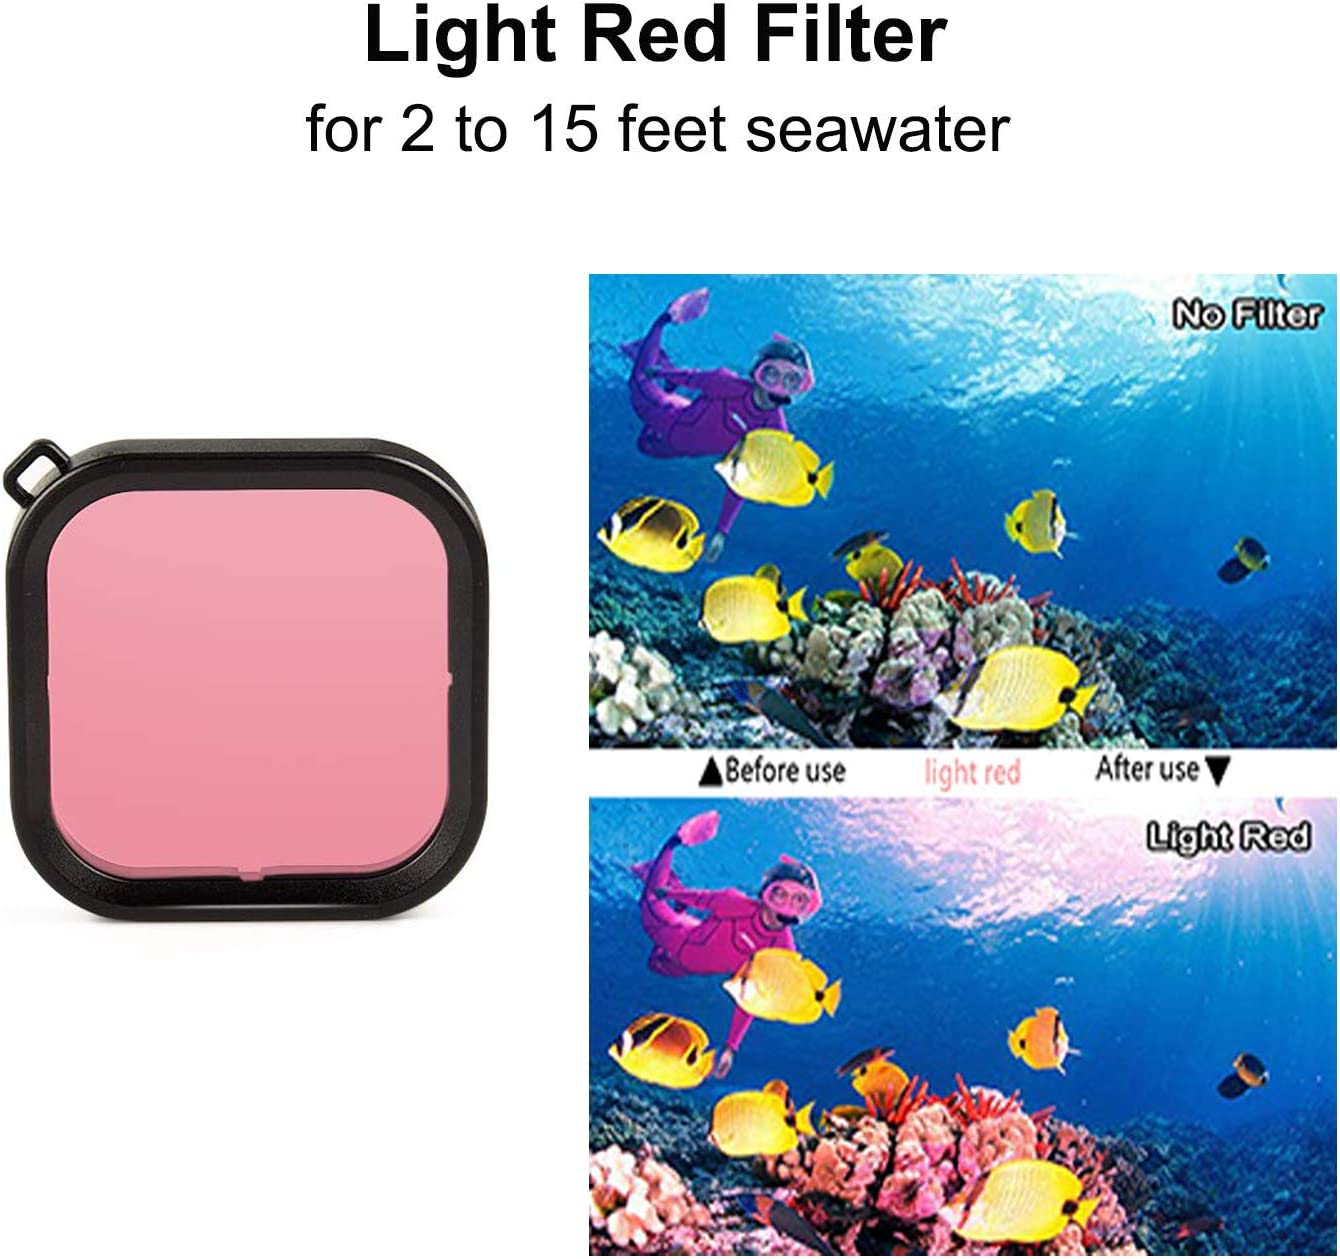 Camera Lens Waterproof Red Diving Filter Absorbing Blue Light for DJI OSMO Action Camera Accessories